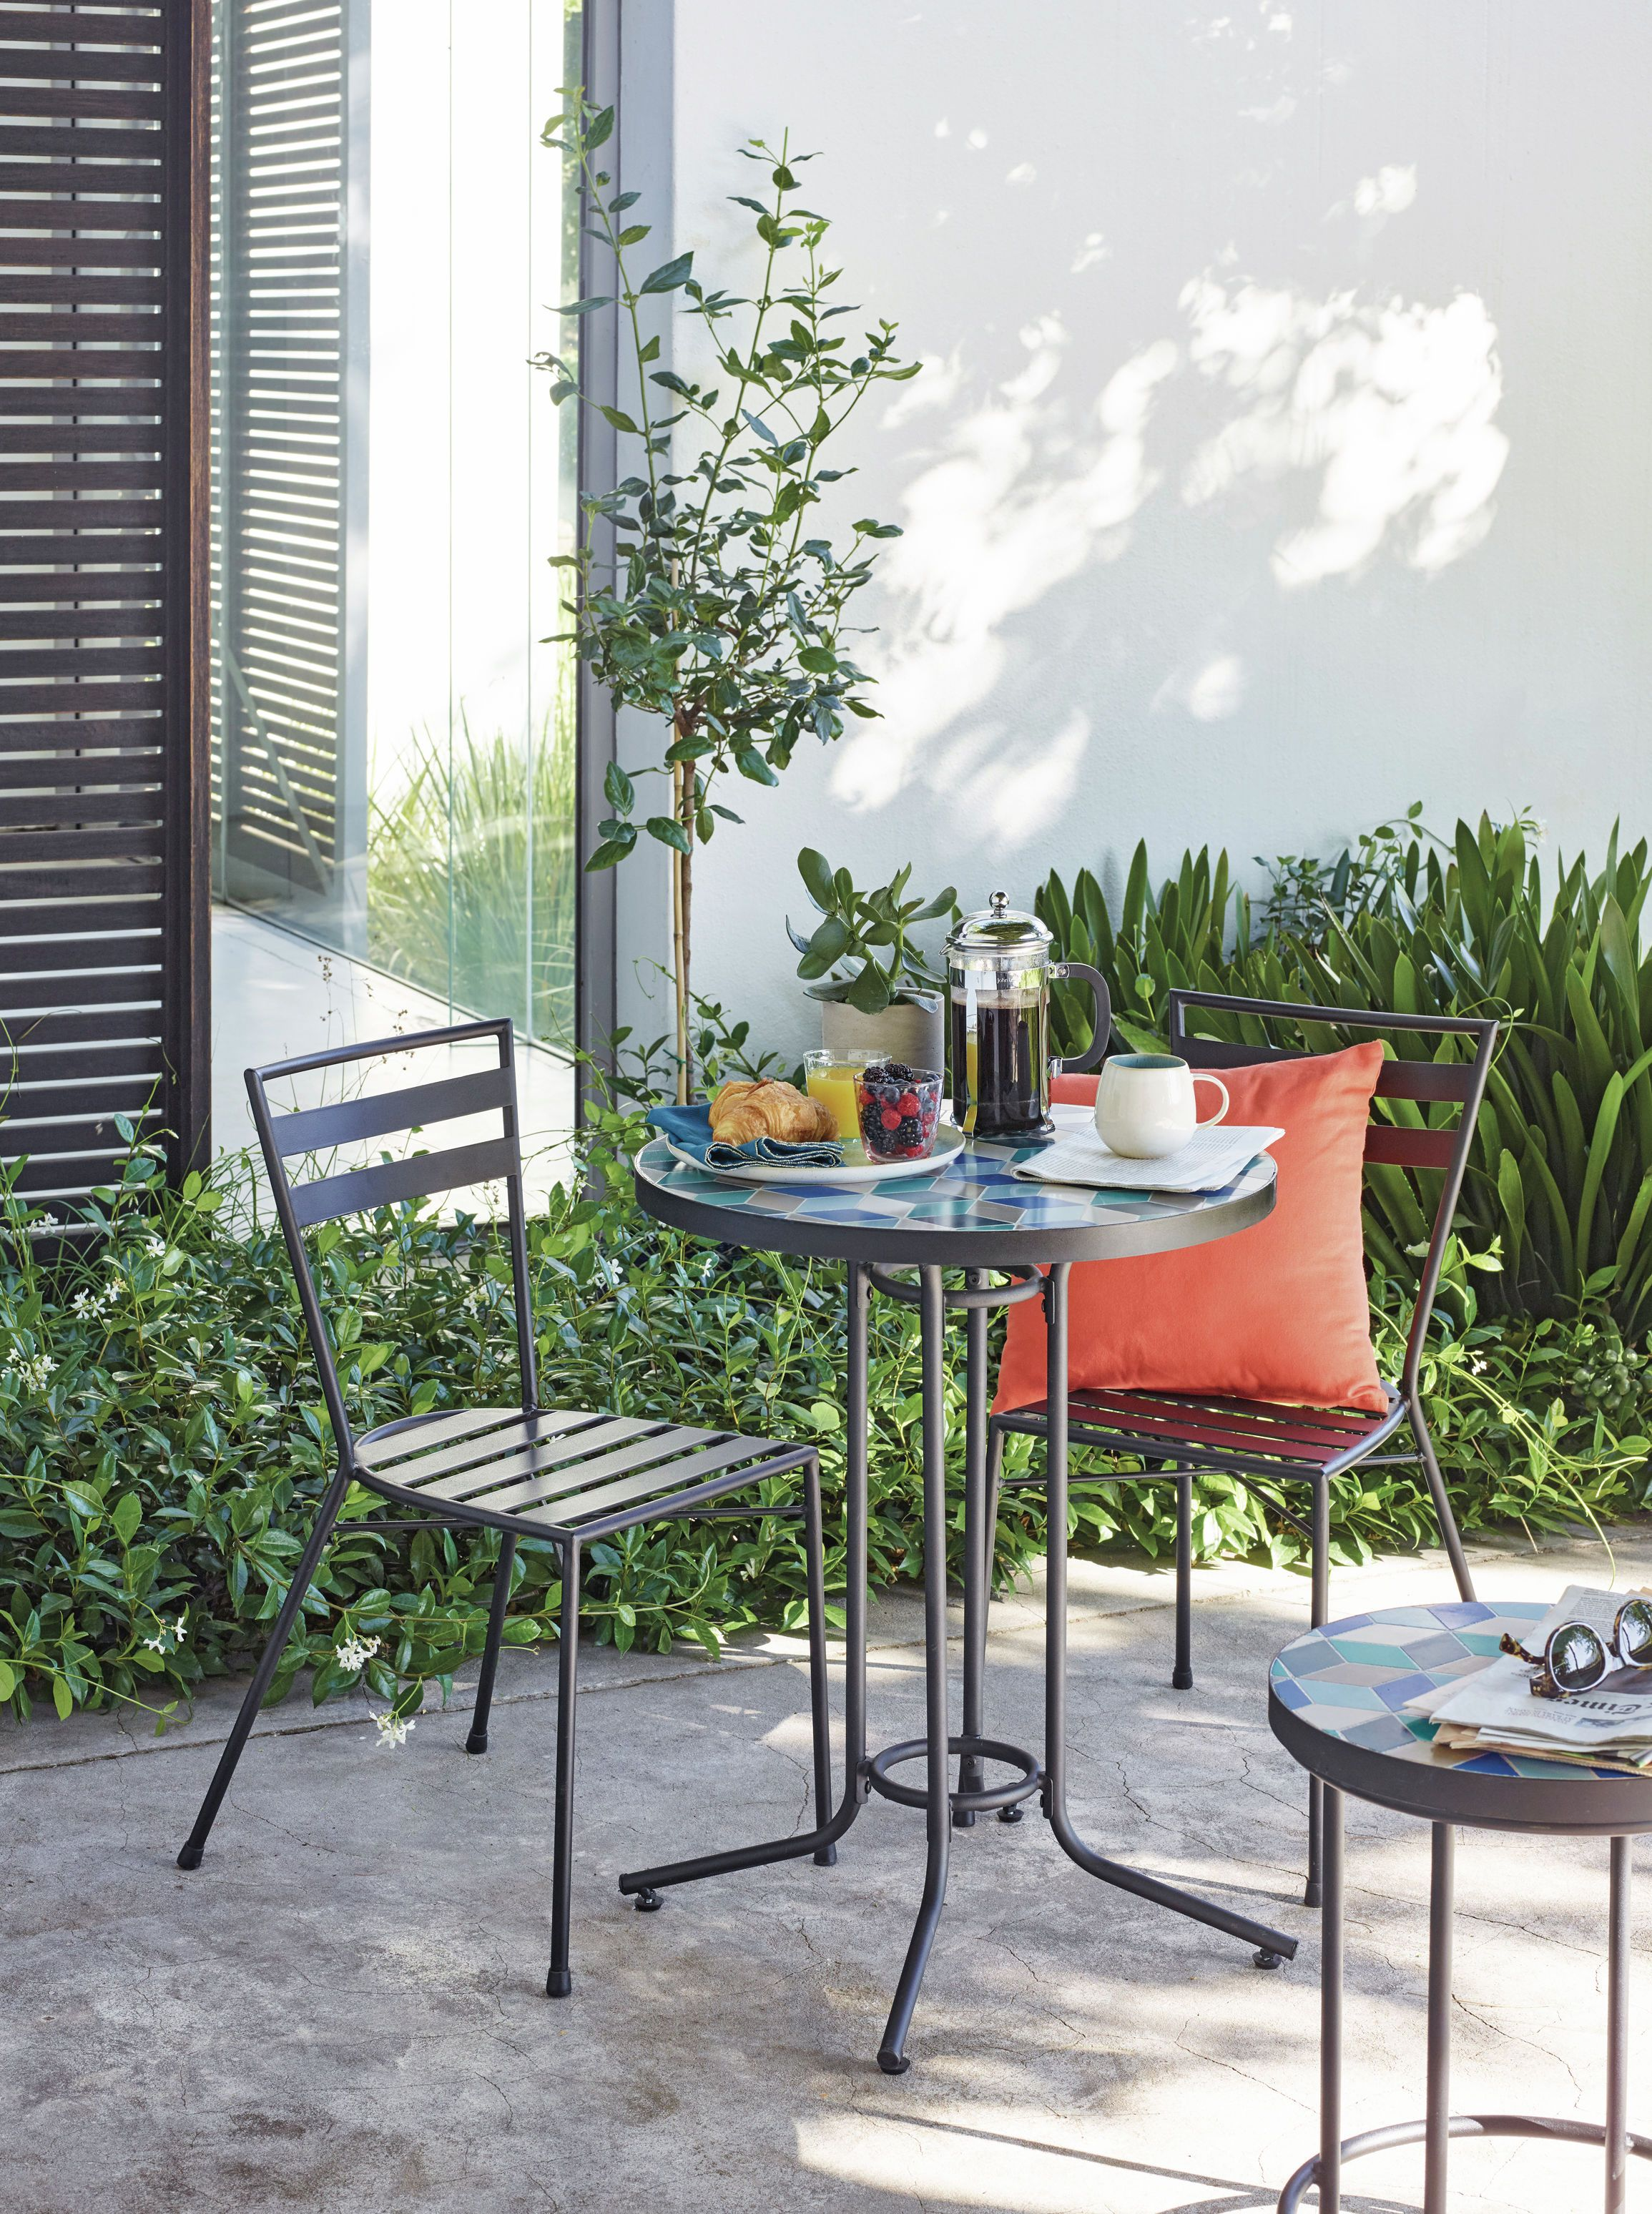 John Lewis Suri 2 Seater Mosaic Bistro Garden Table and Chairs Set, Multi